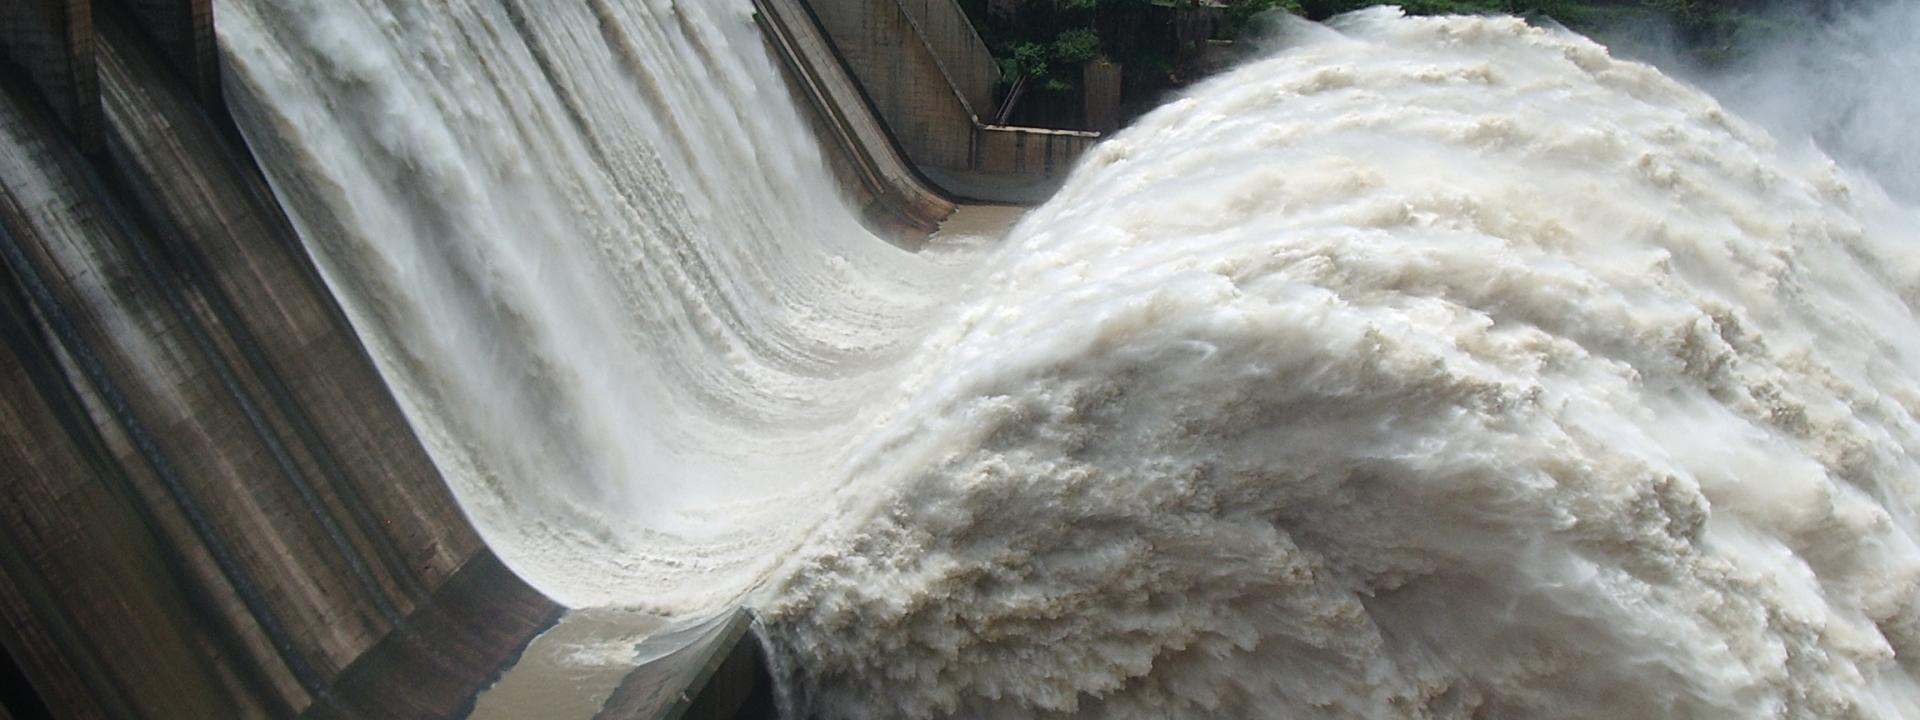 Srisailam dam with gates open.